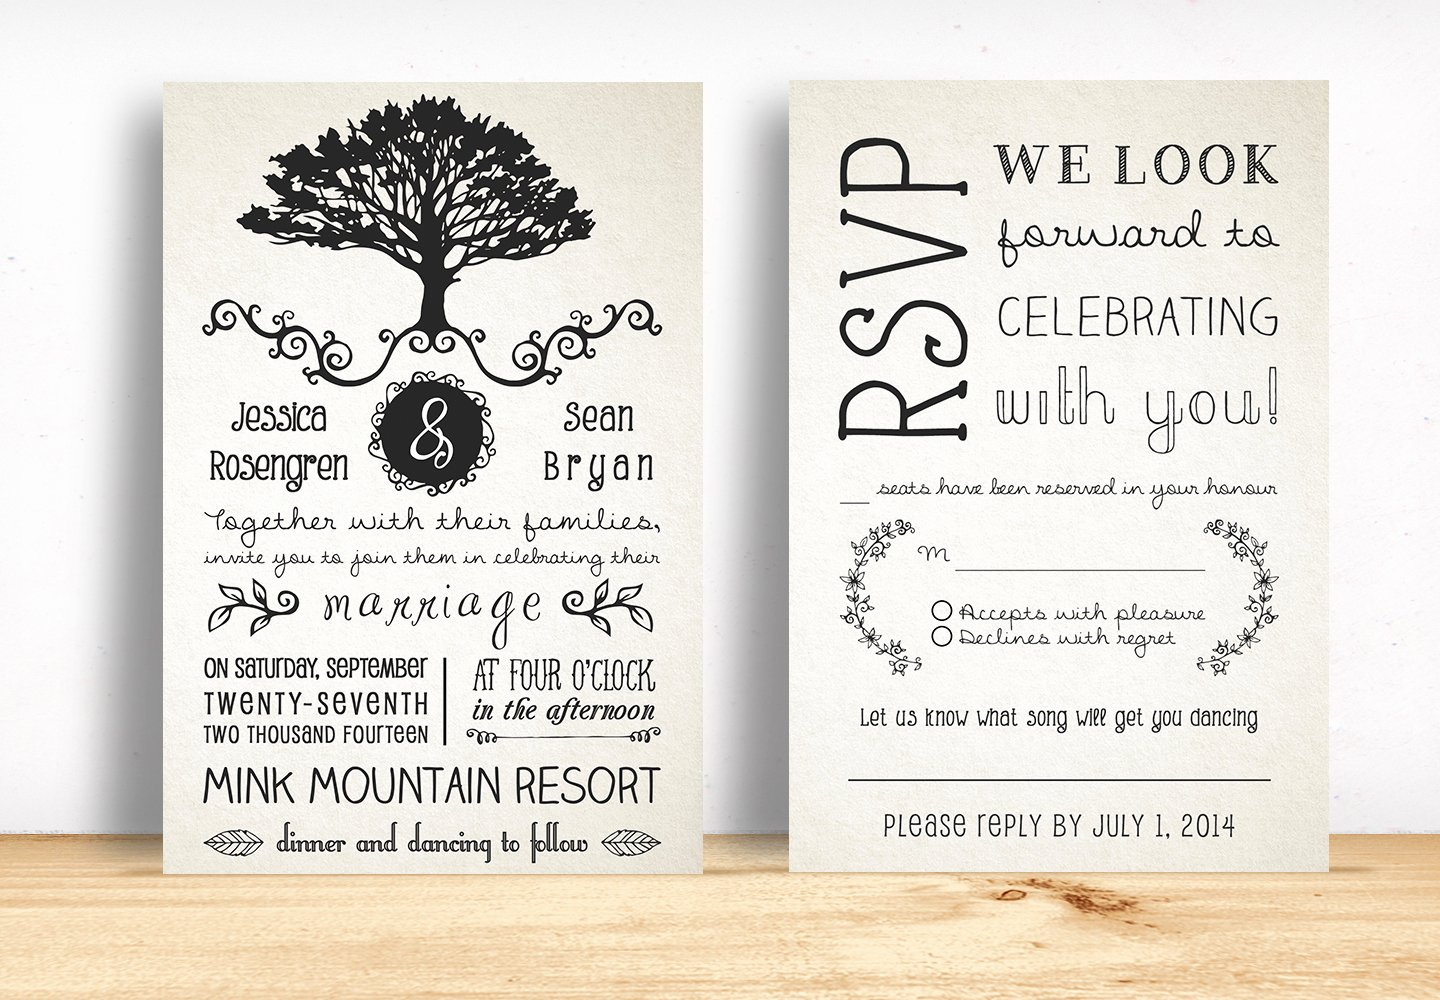 Rustic Wedding Invites Templates Unique Rustic Wedding Invitation Pack Invitation Templates On Creative Market